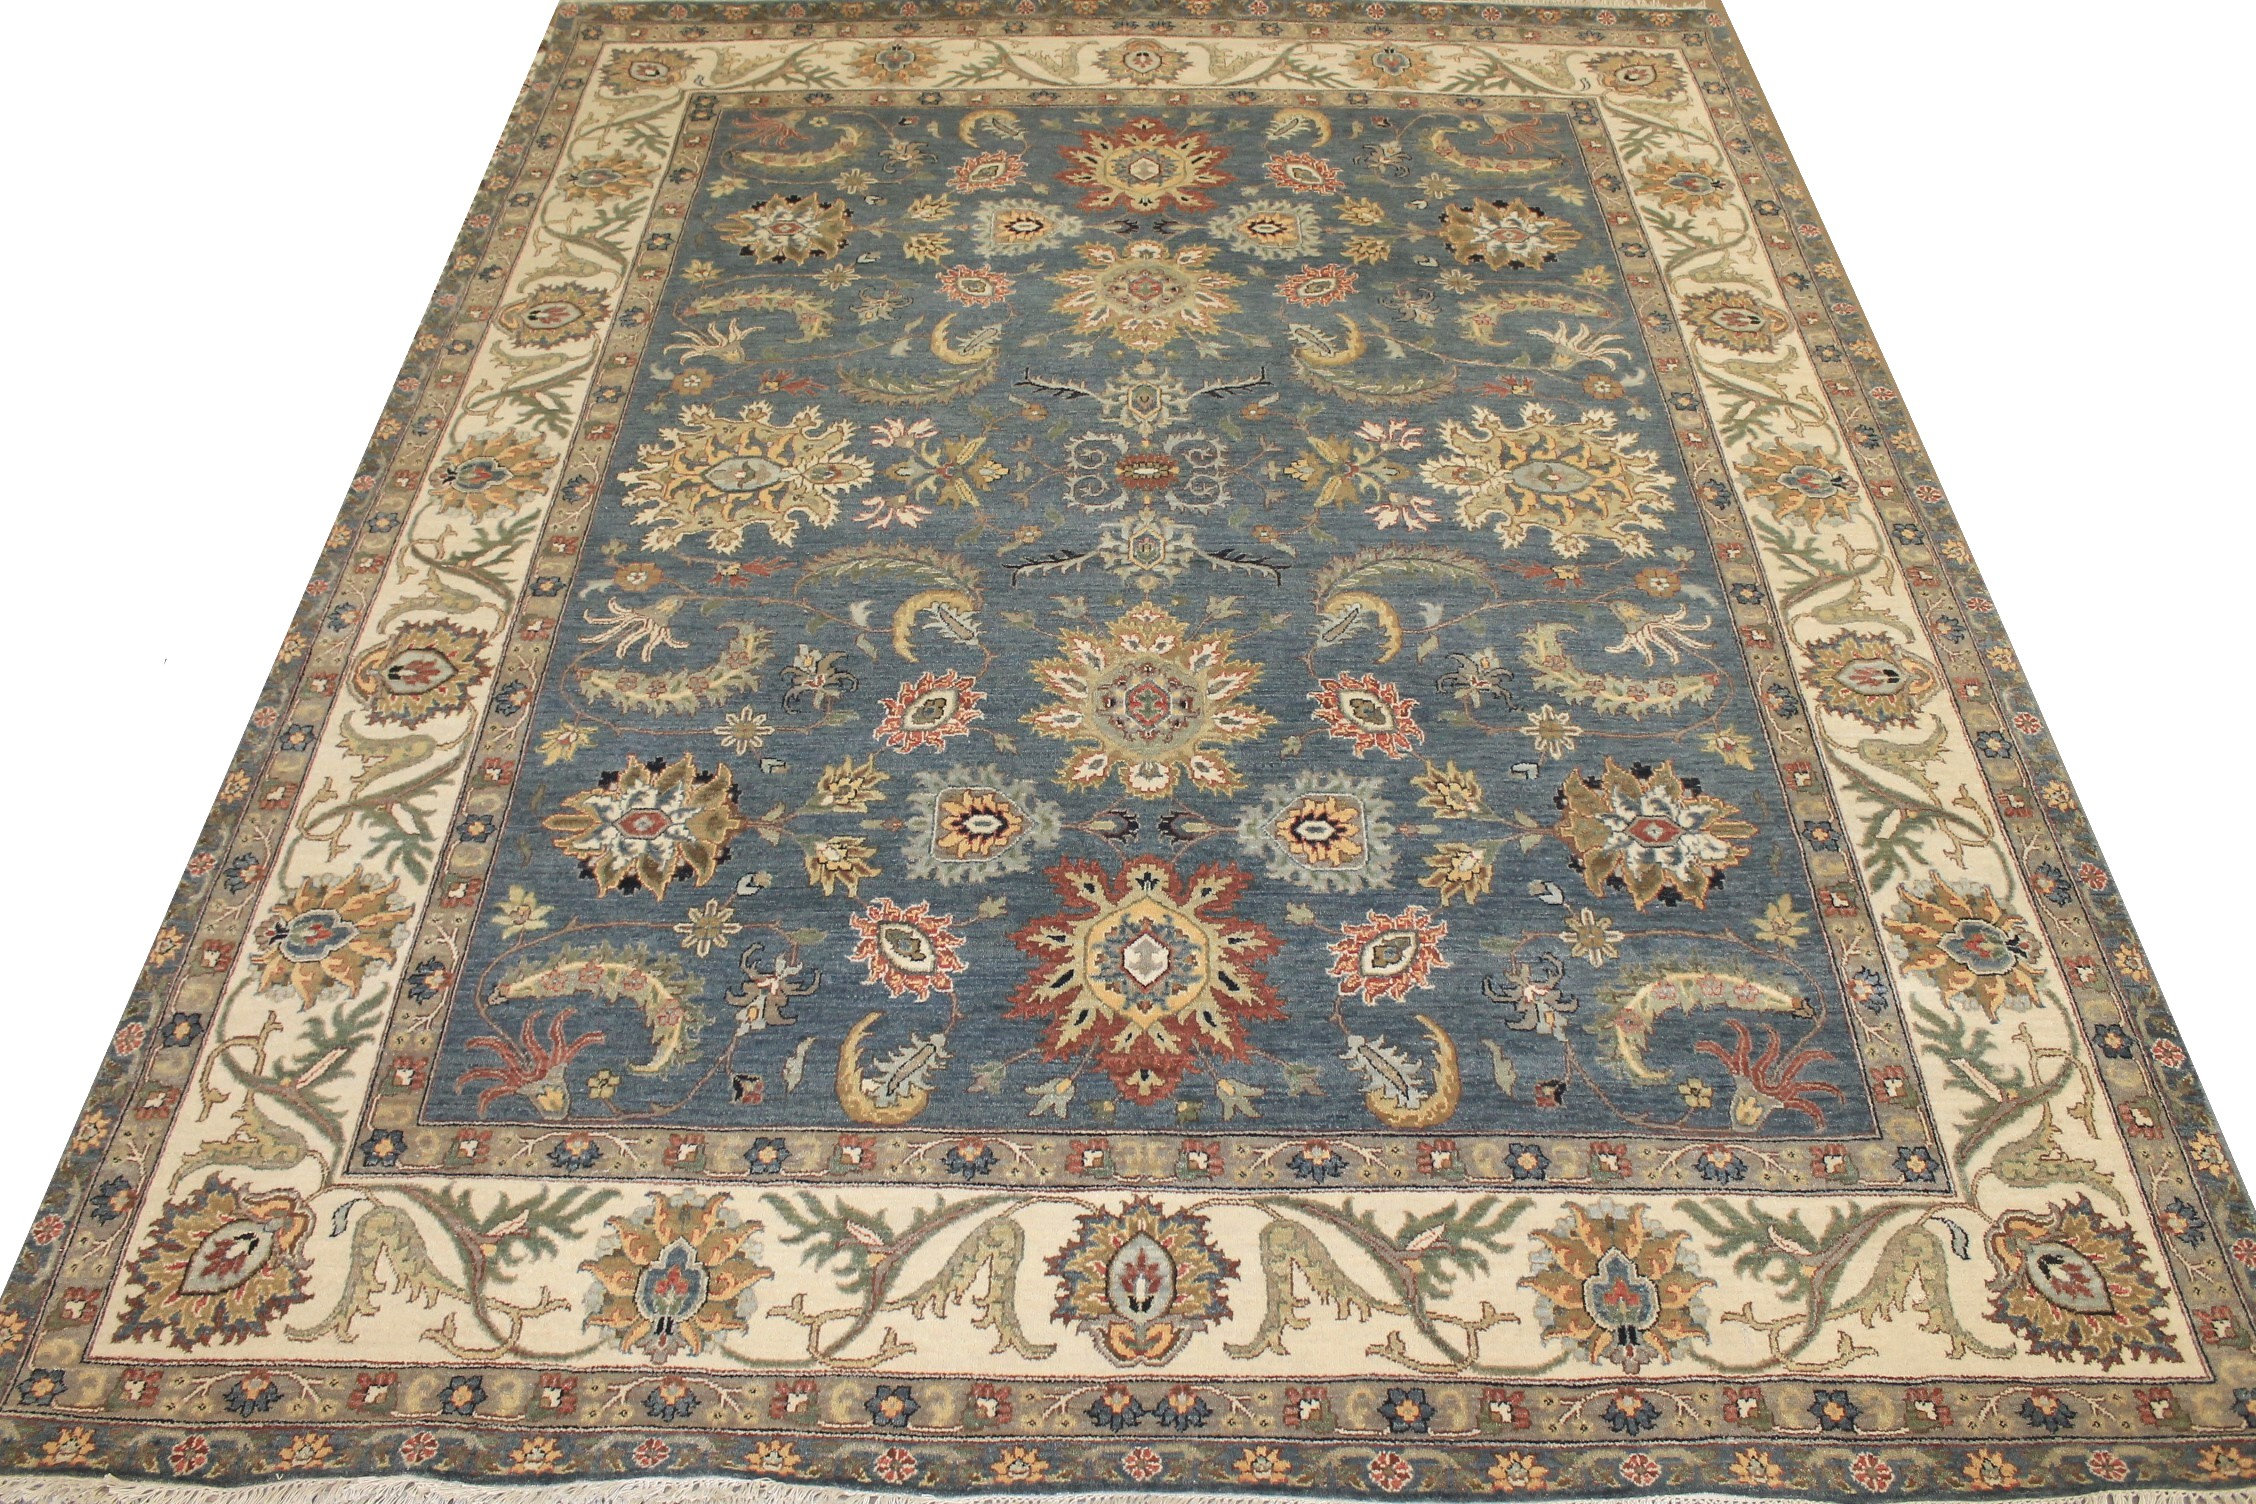 8x10 Oriental Hand Knotted Wool Area Rug - MR025520